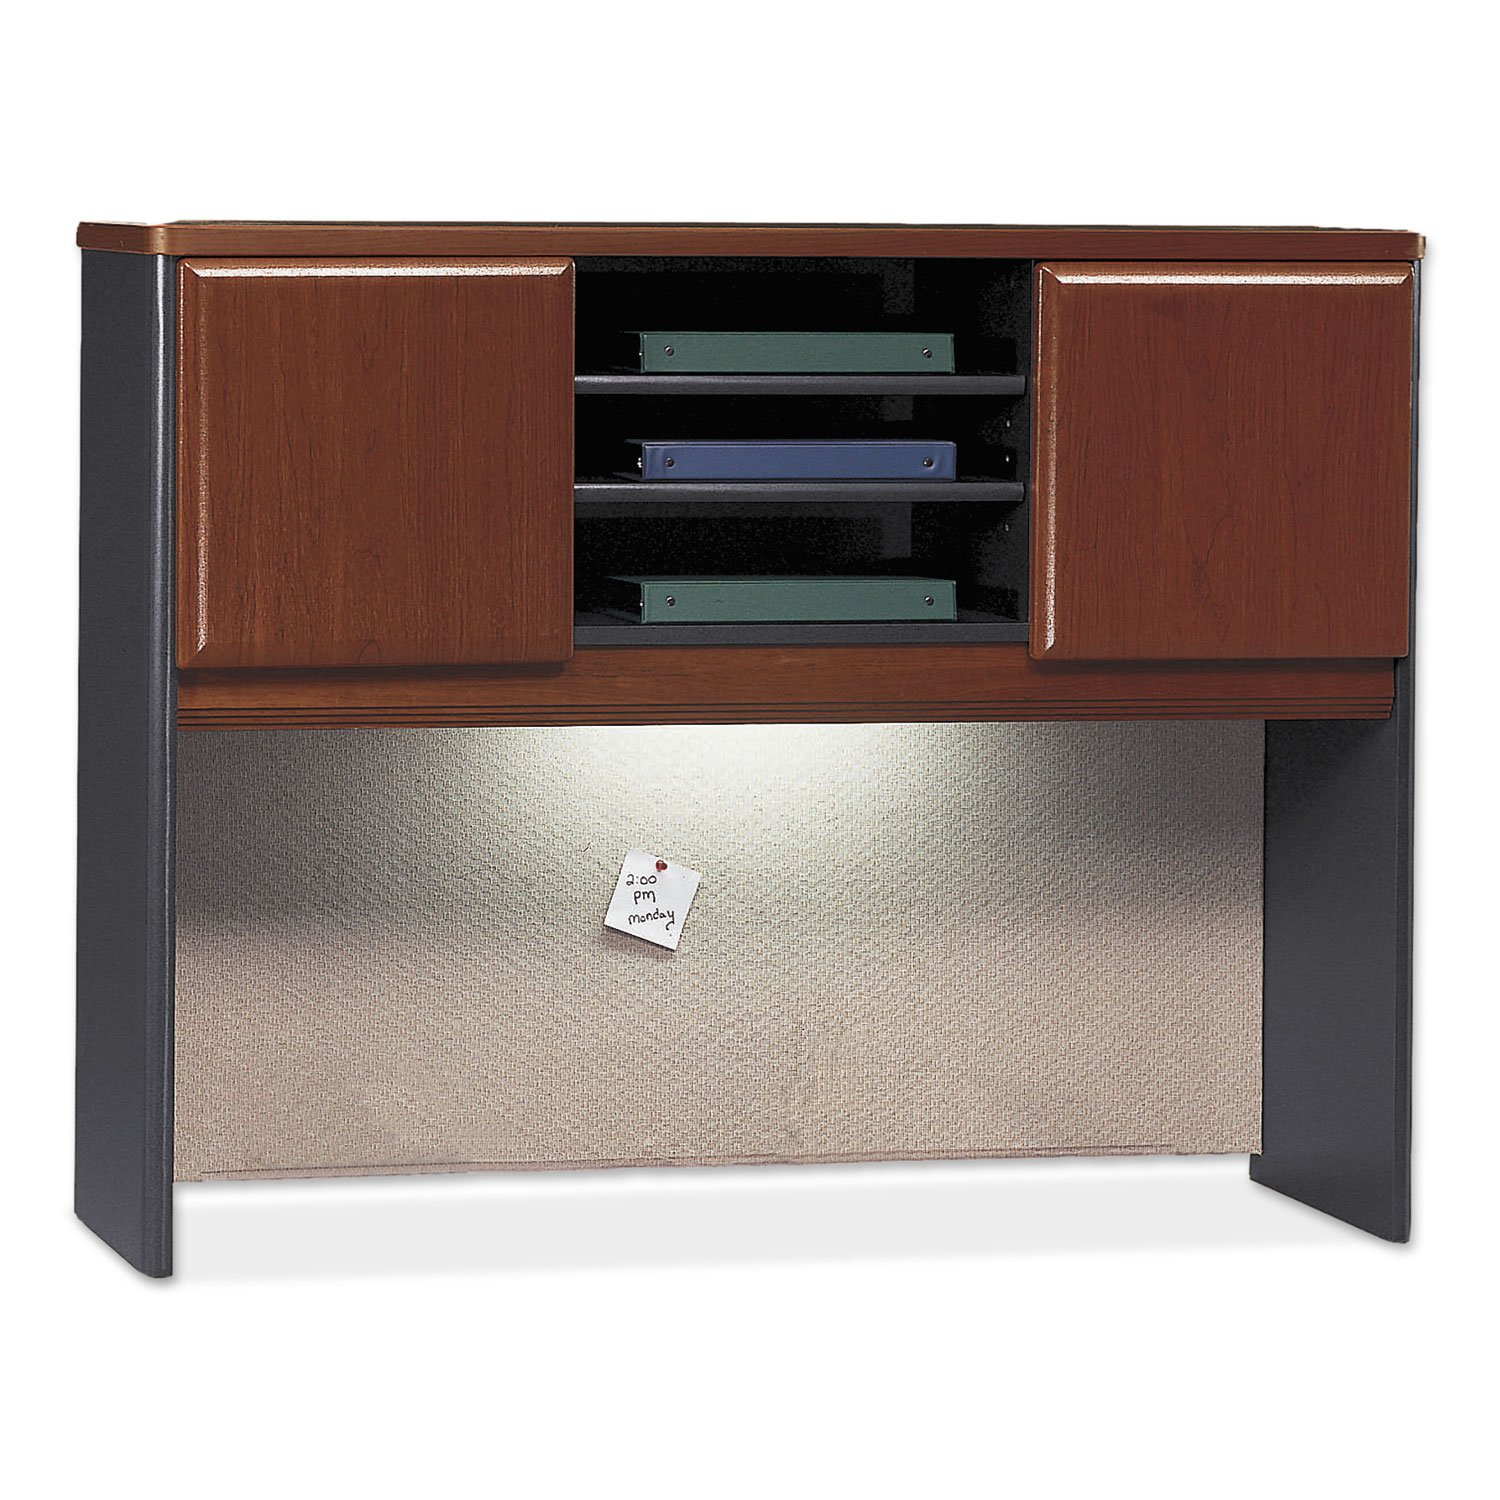 Hutch 3 Open Shelves 48W Hansen Cherry Doors-Galaxy Base